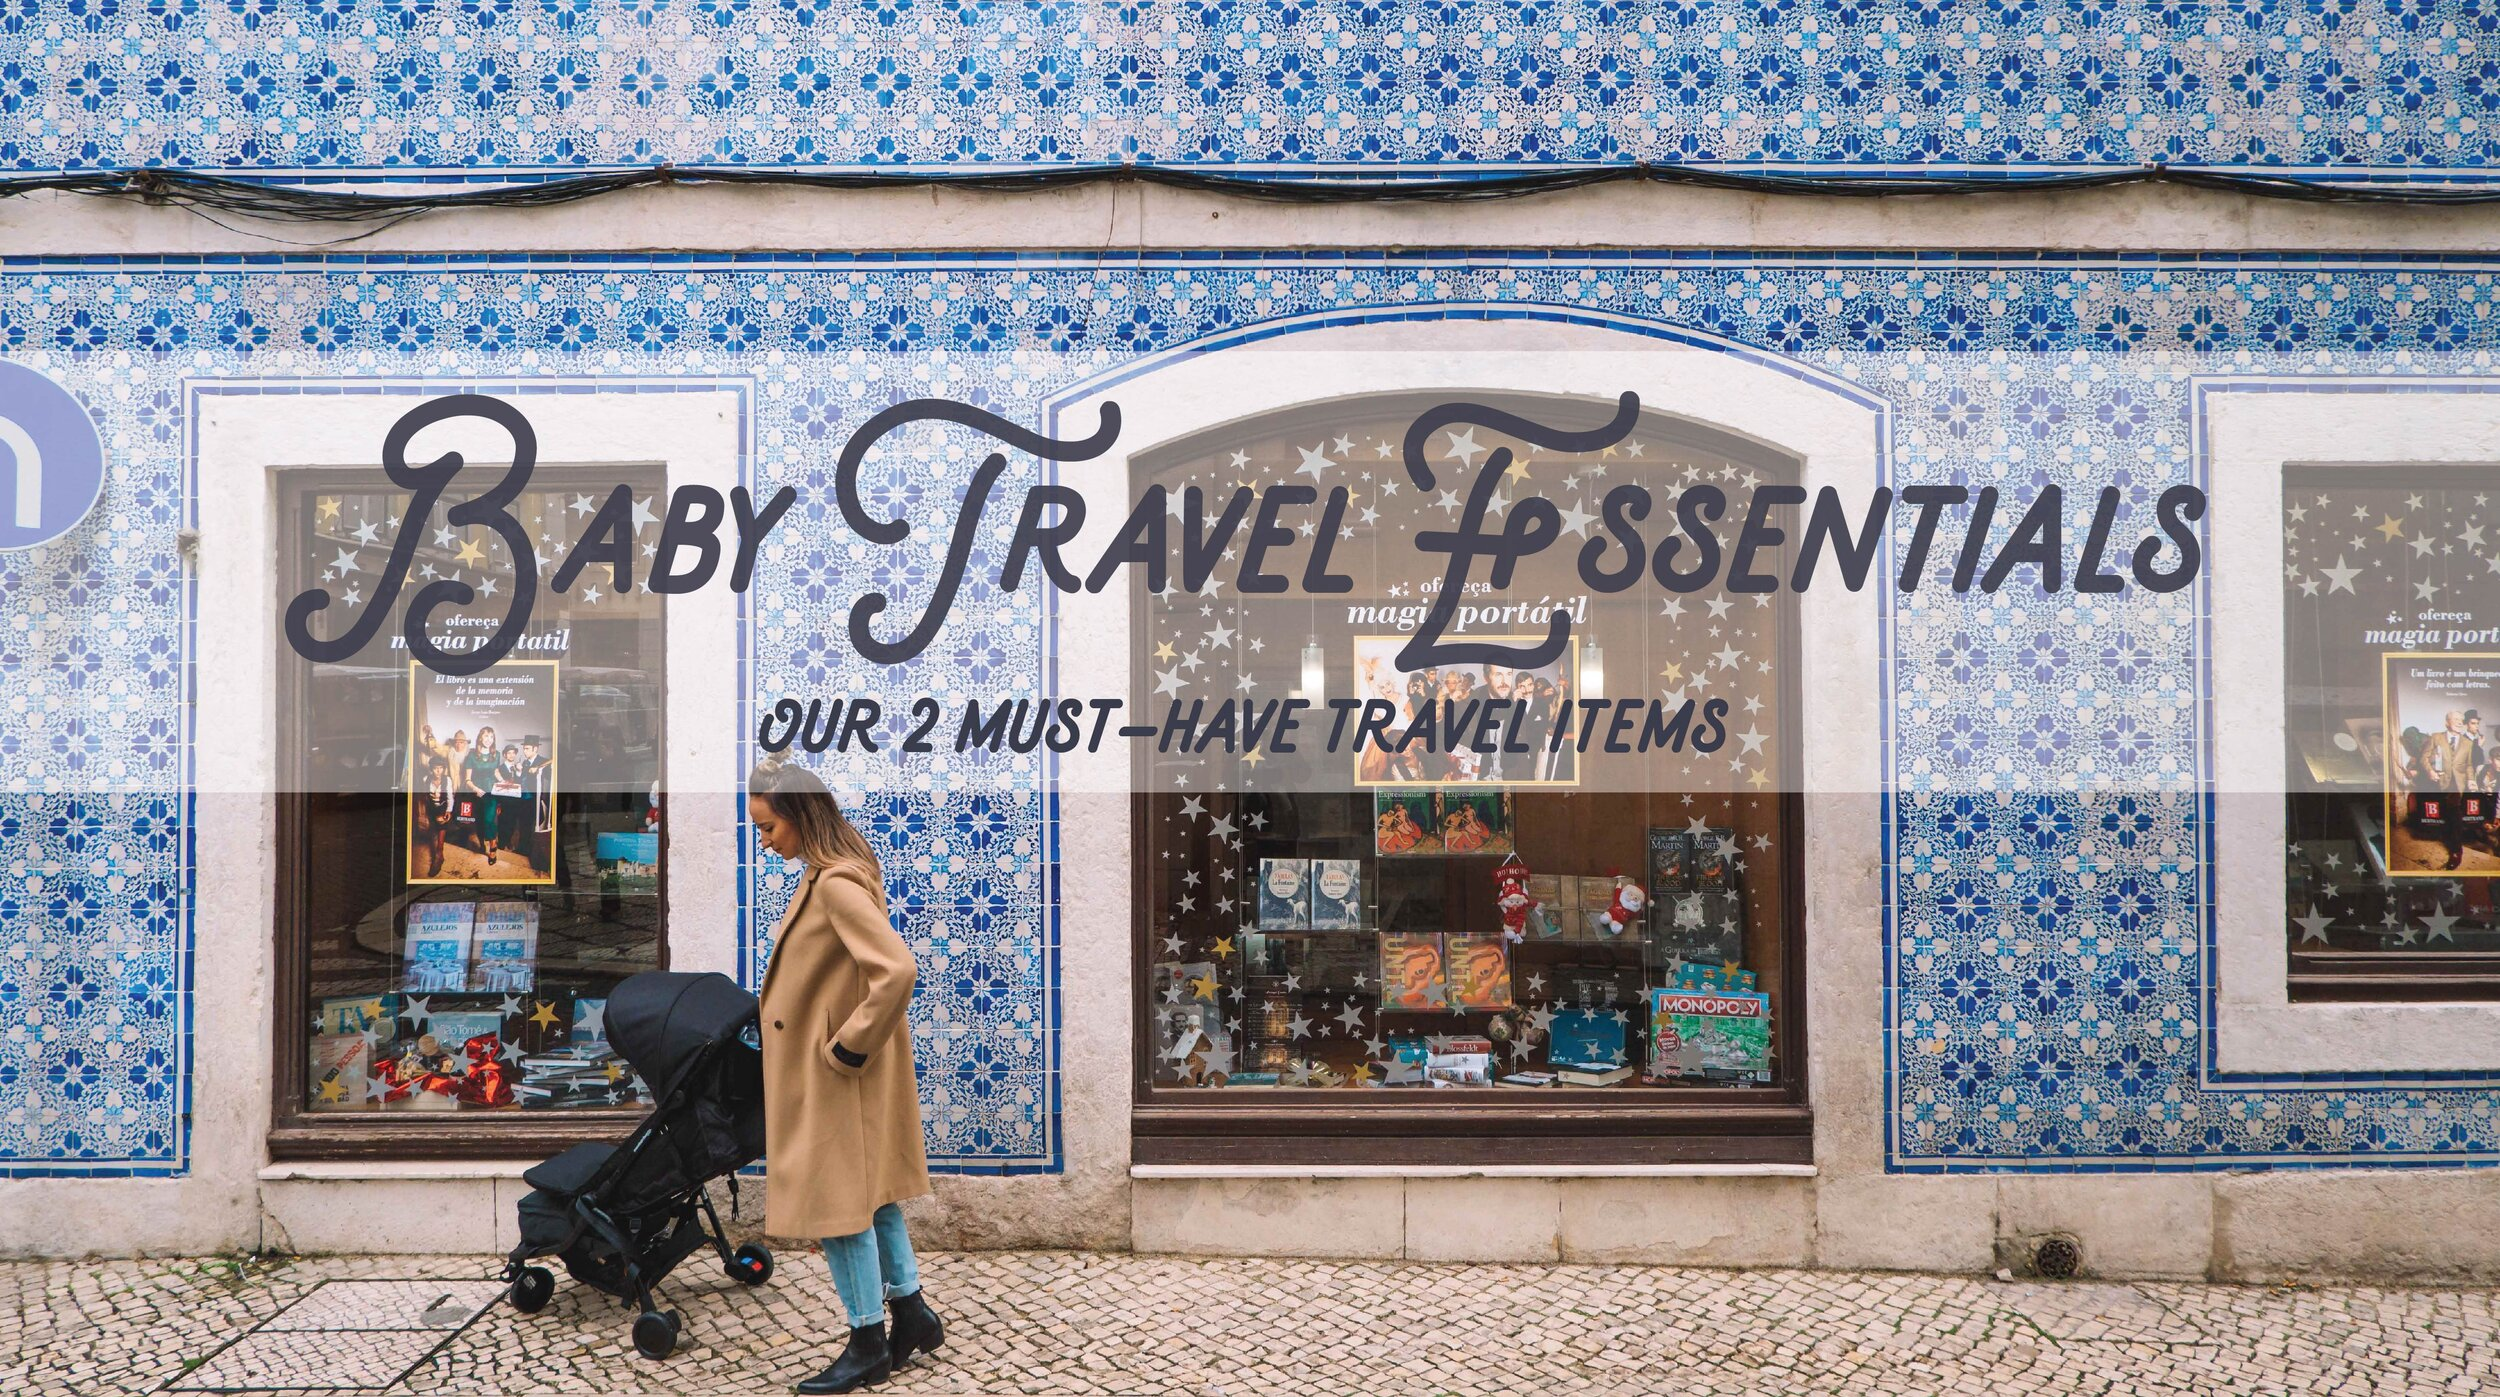 BABY TRAVEL ESSENTIALS: Our 2 must-have travel items